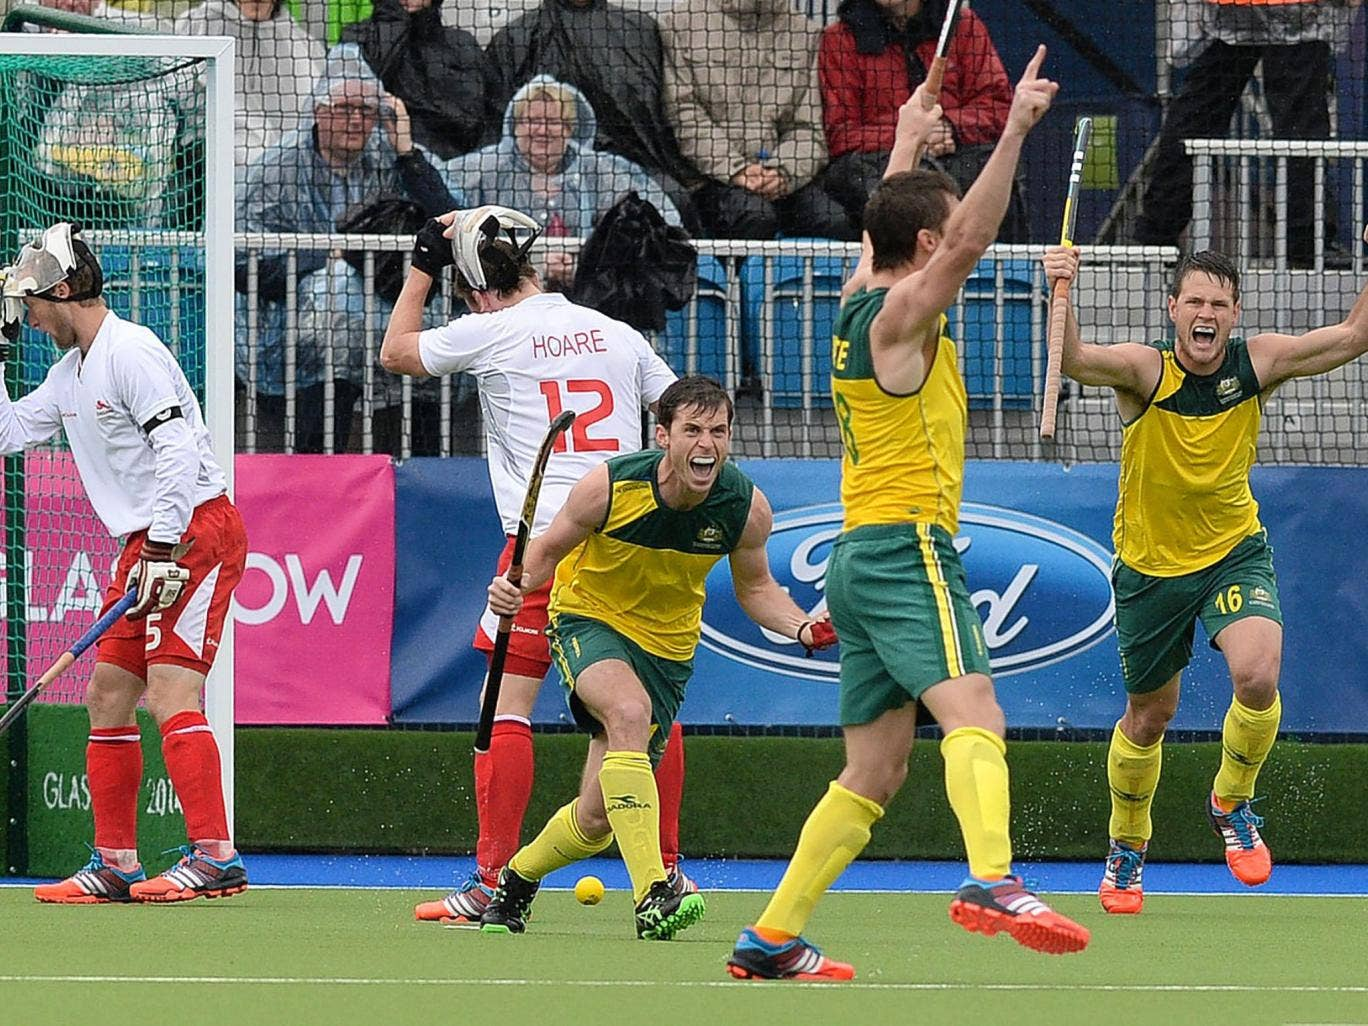 Australia players raise their arms in delight as another goal puts the match beyond England and a place in the final is secured